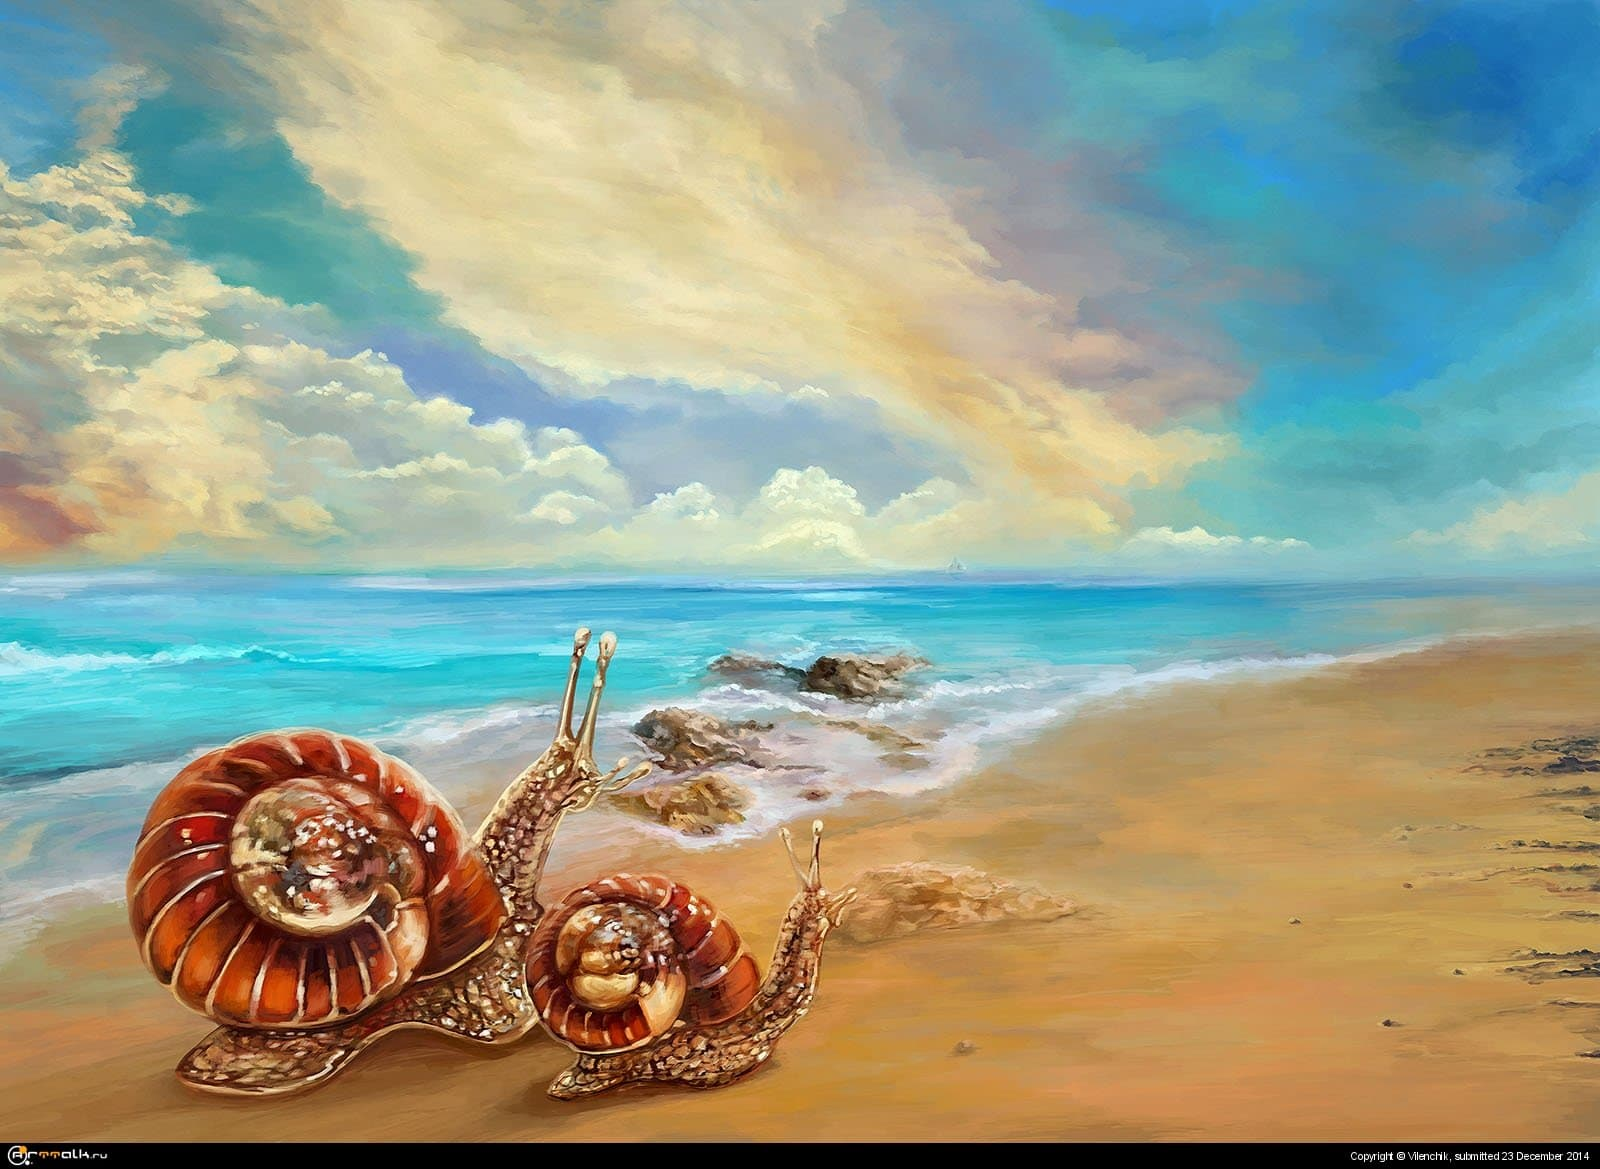 Snails Travelers